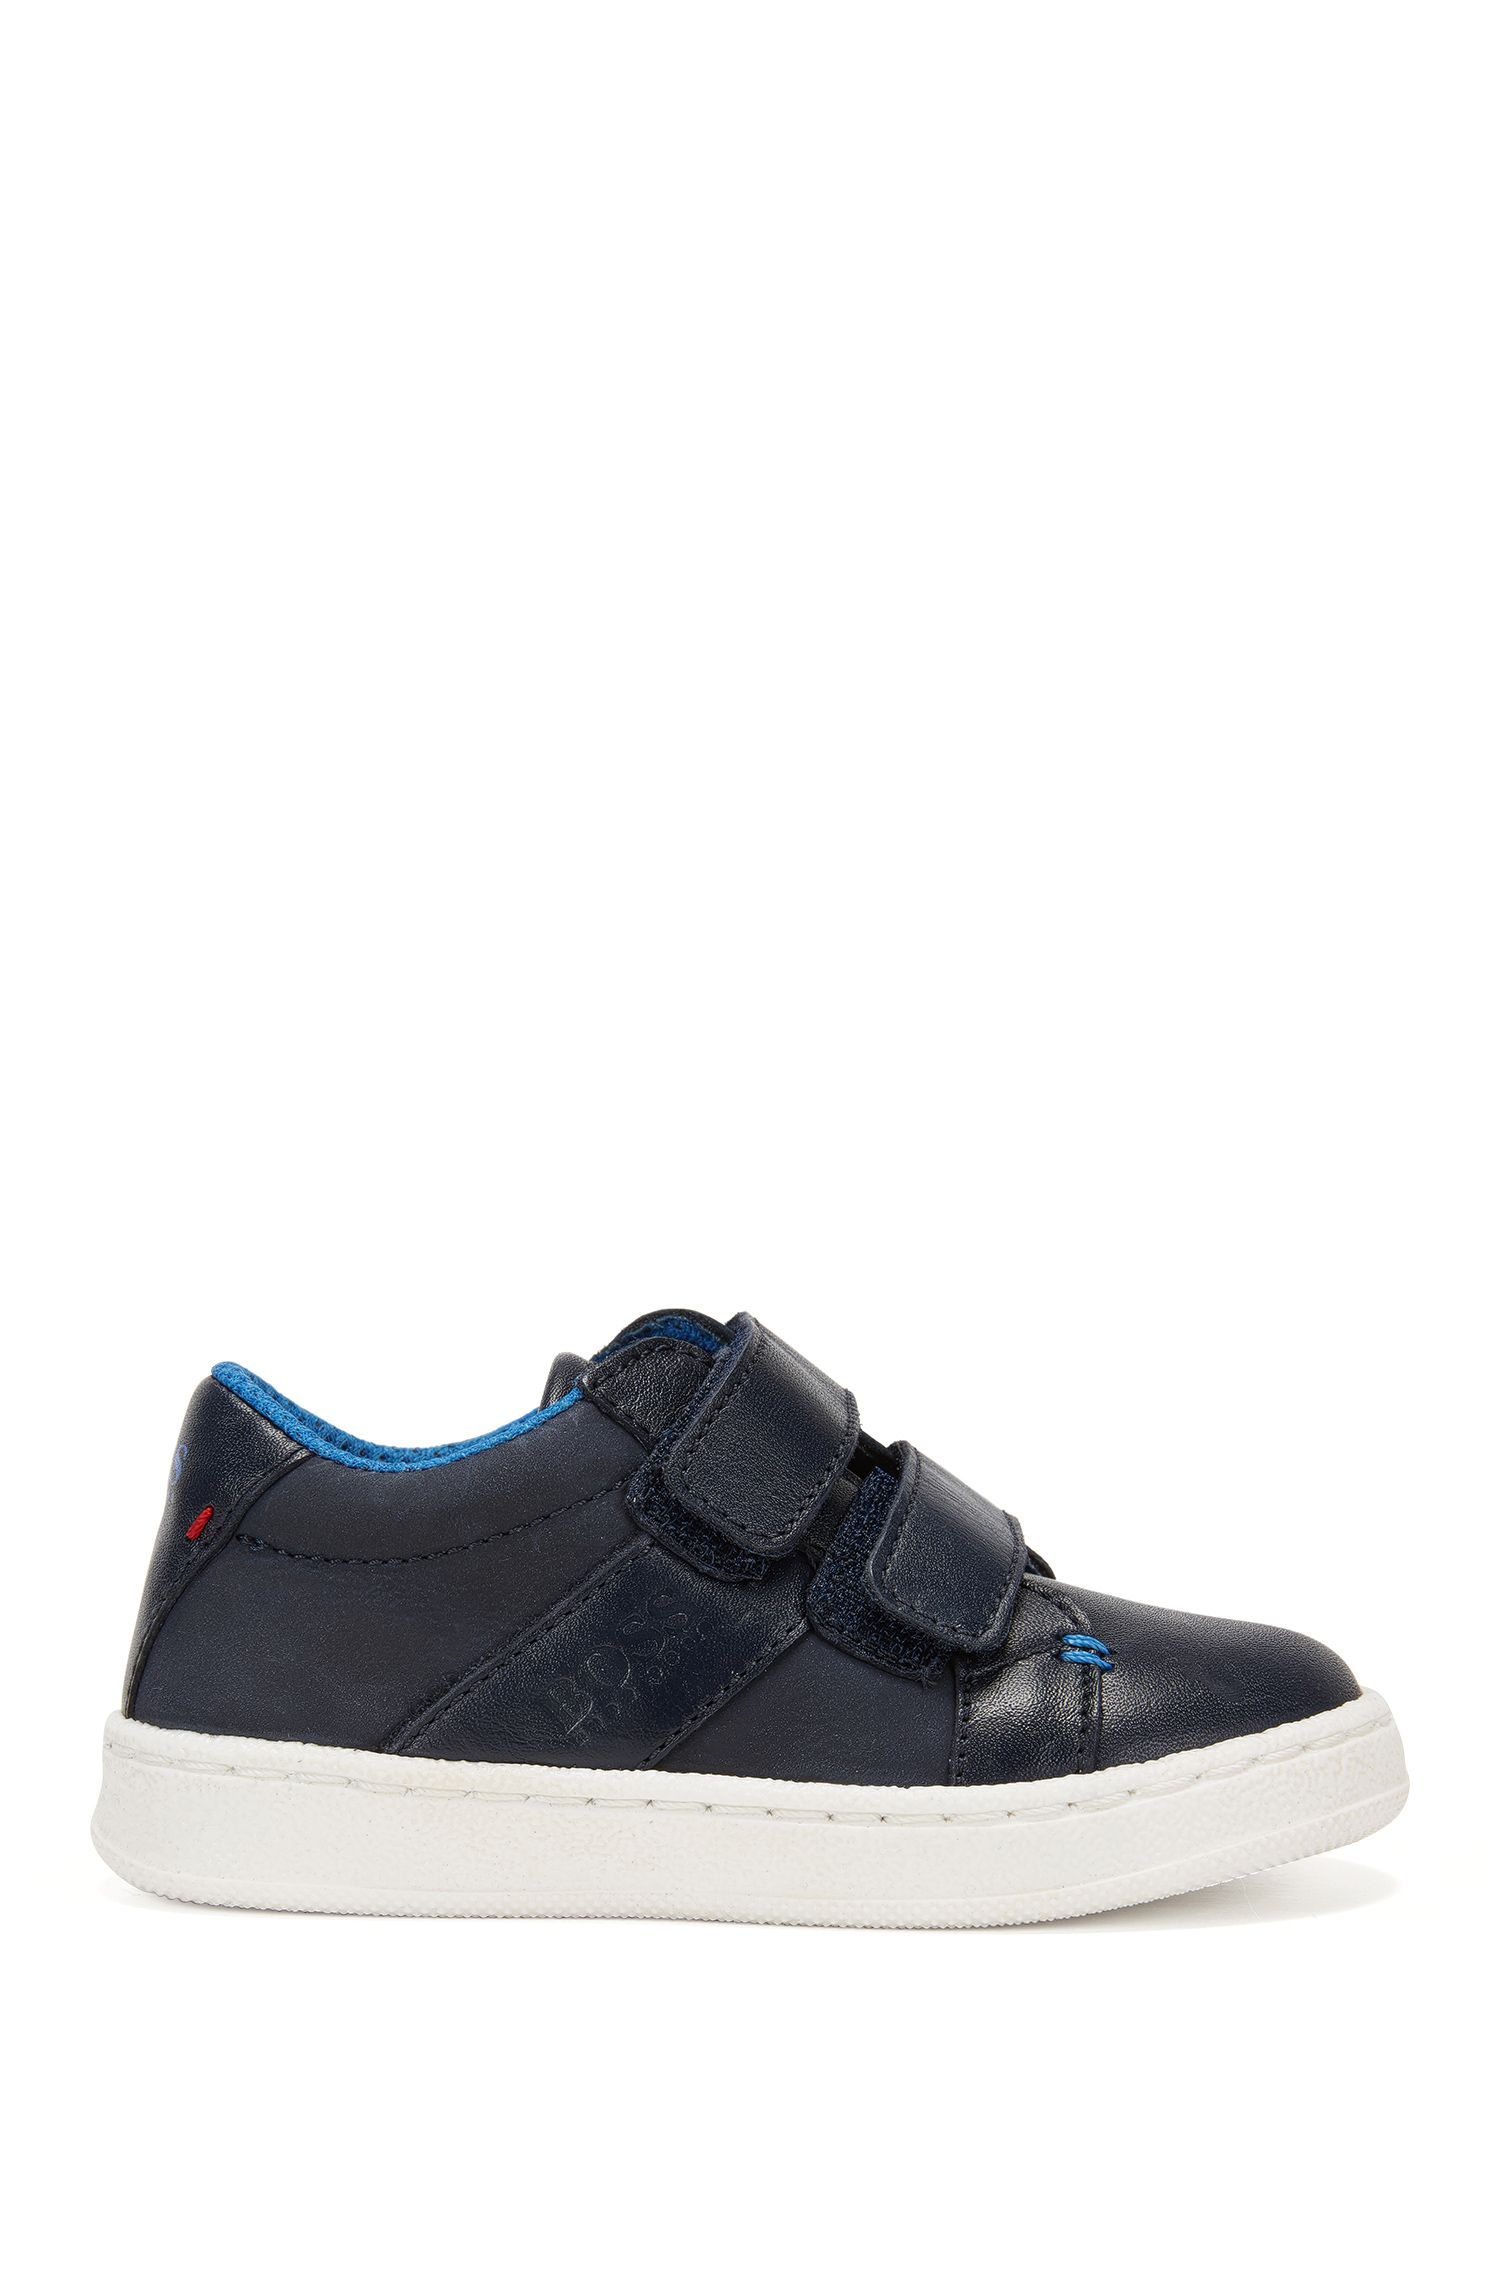 Kids' leather trainers with touch closure: 'J09089'